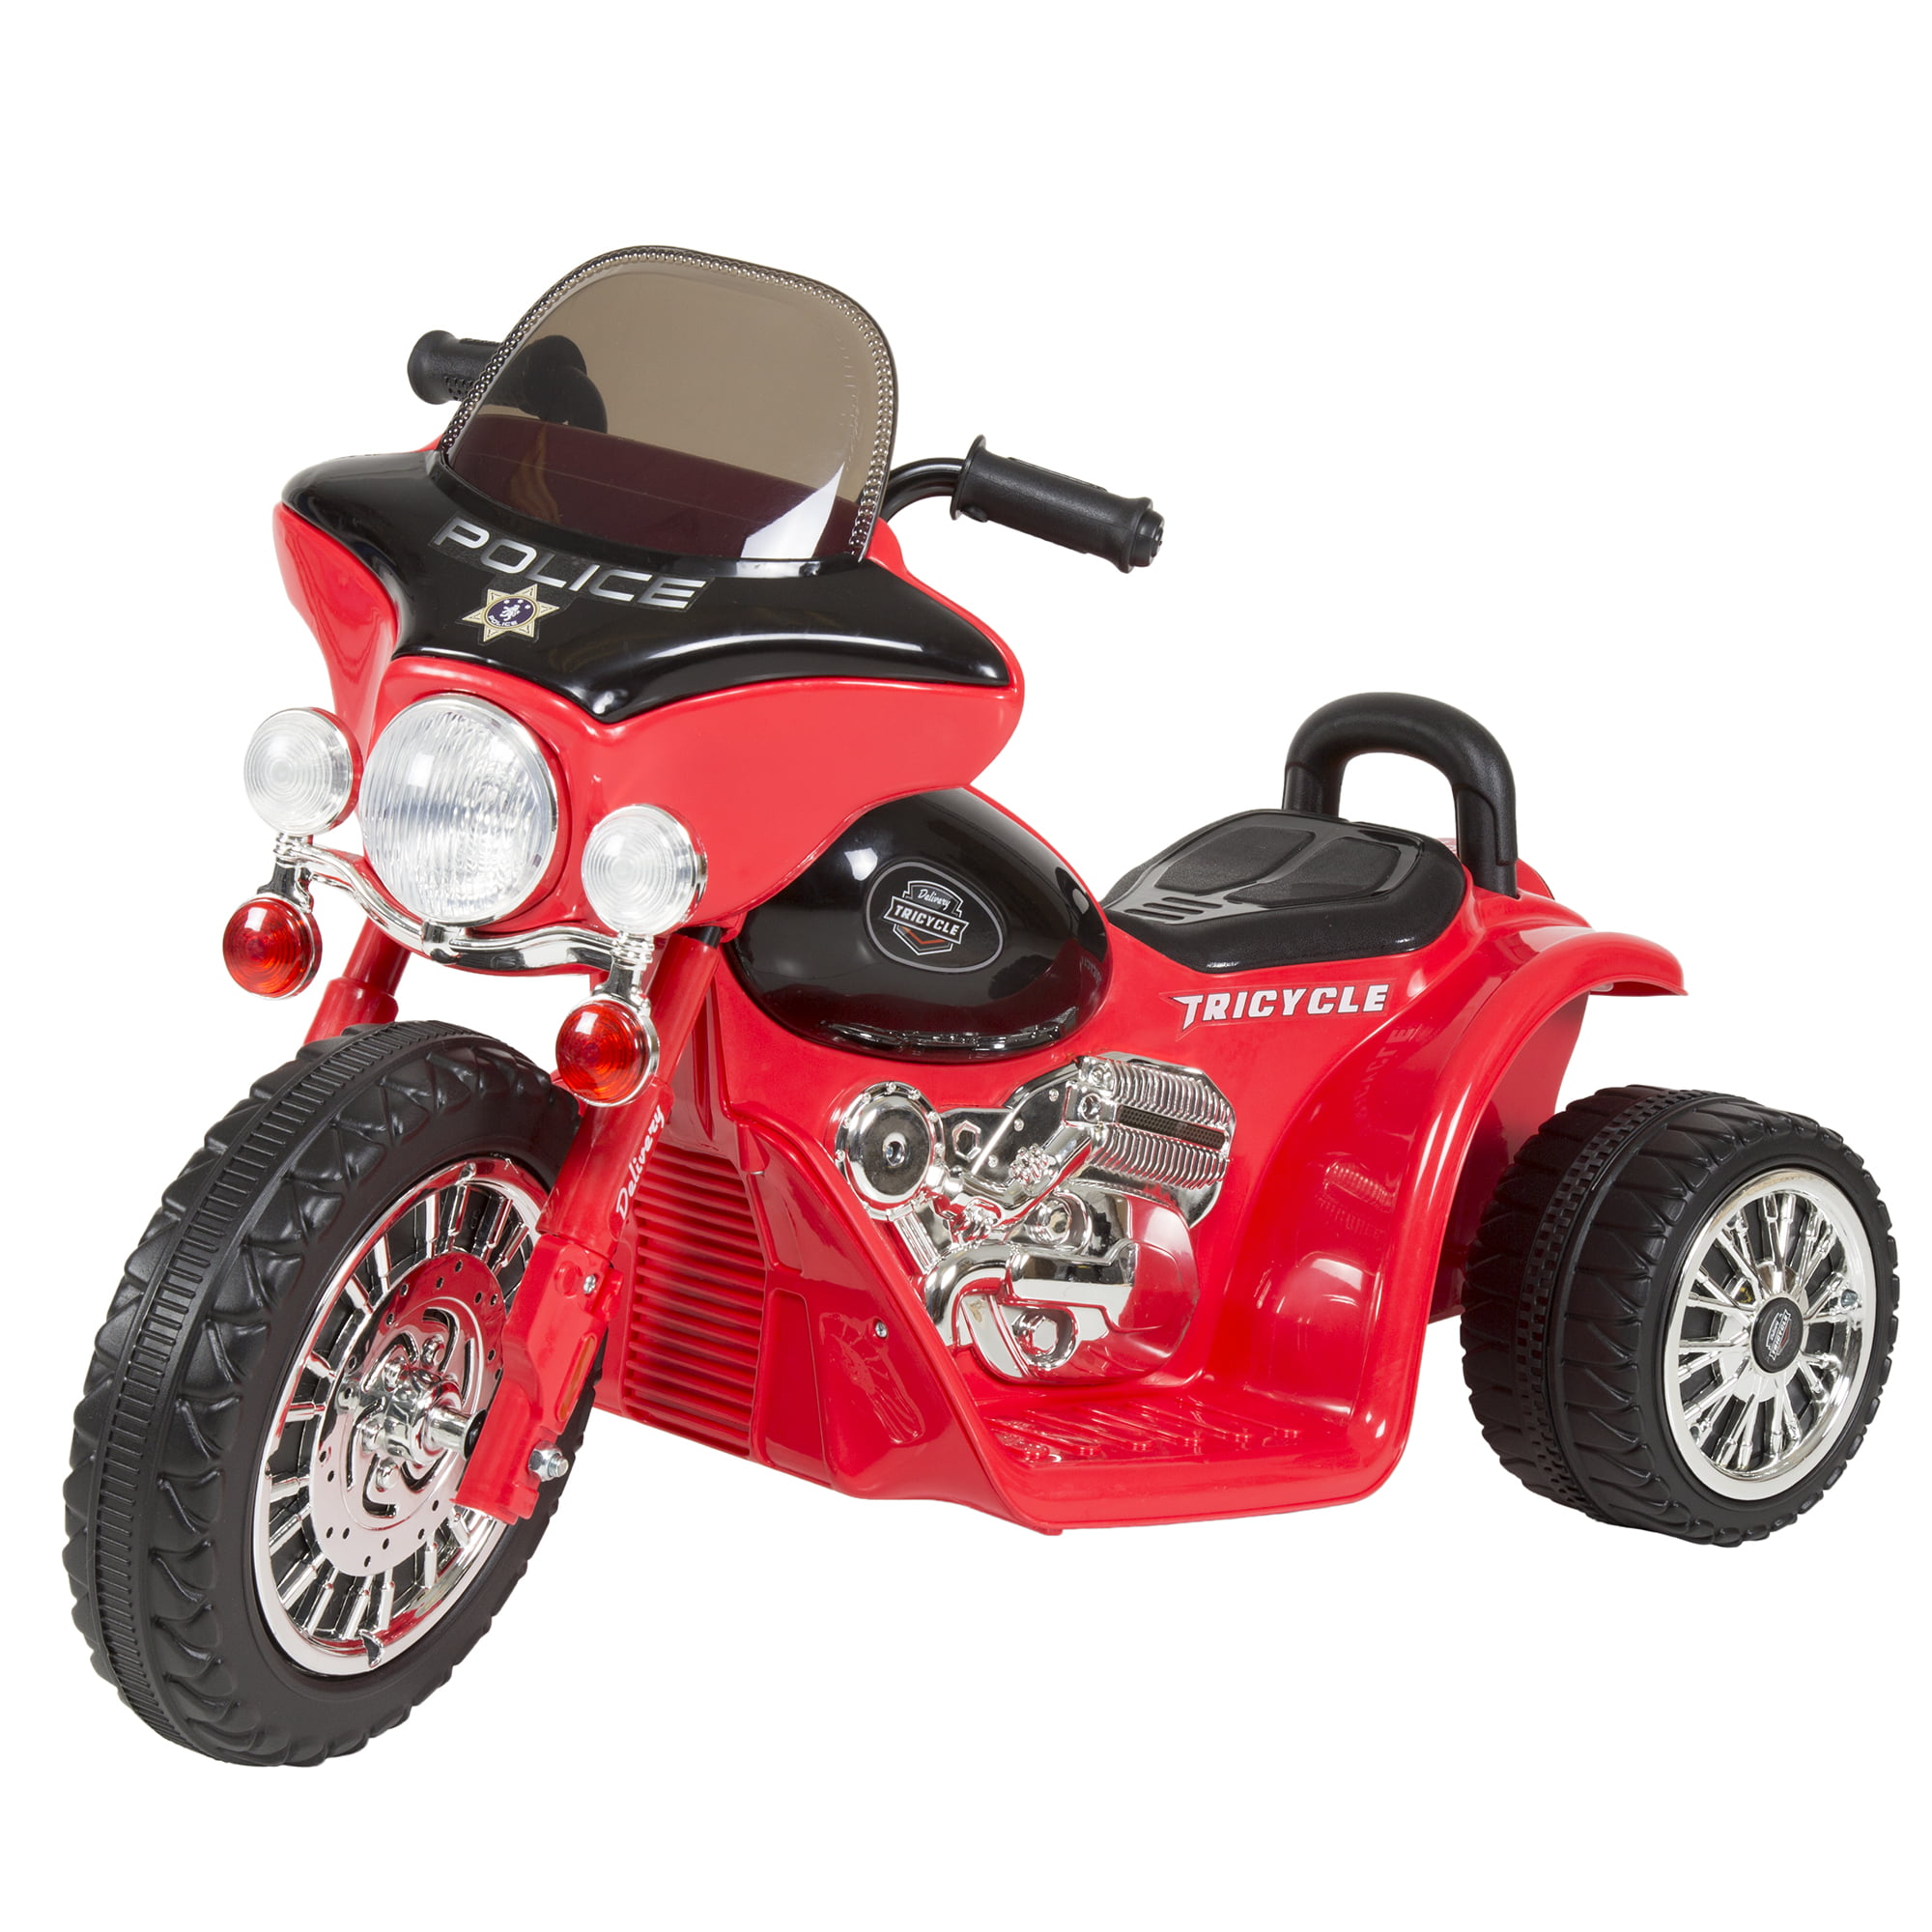 Ride on Toy, 3 Wheel Mini Motorcycle Trike for Kids, Battery Powered Toy by Hey! Play!... by Trademark Global LLC